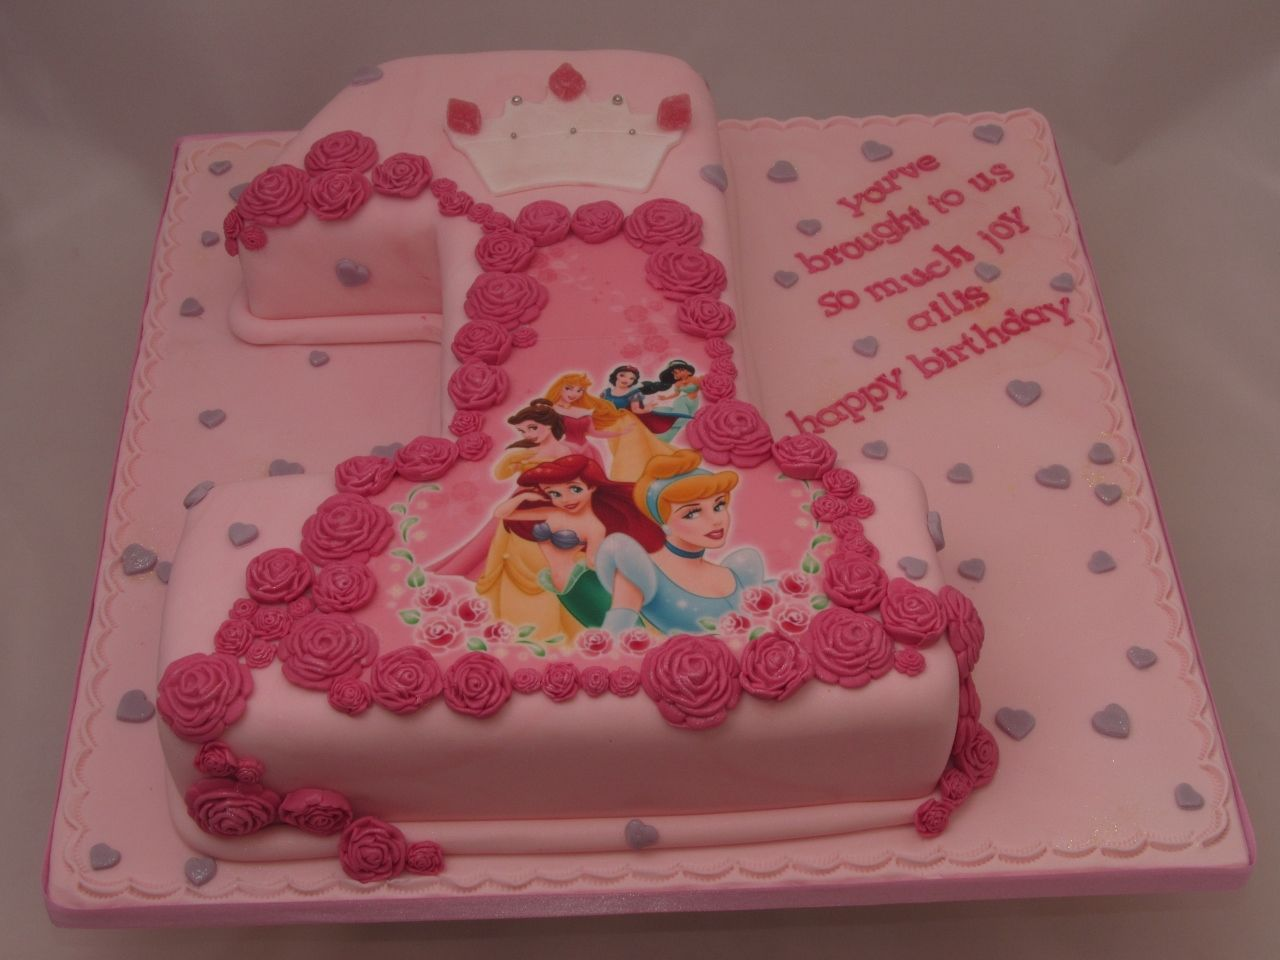 DIsney Princesses 1st Birthday Cake The Way cakepinscom For my